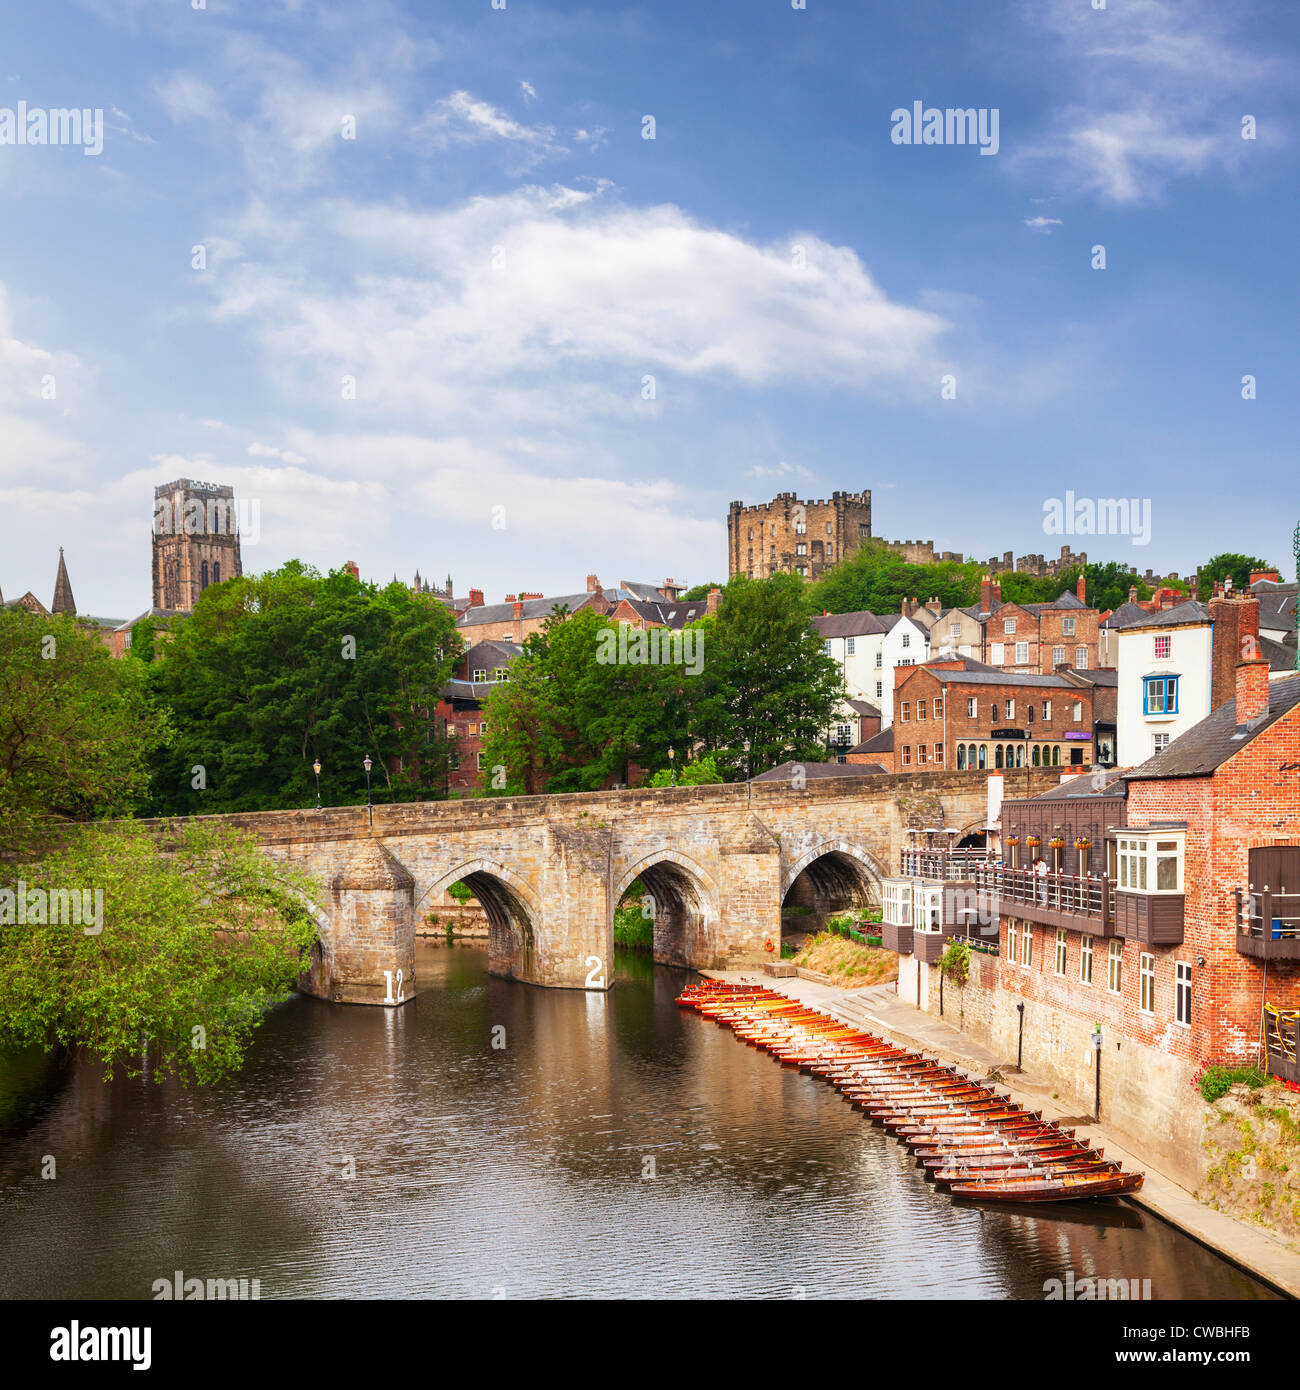 Elvet Bridge and the River Wear, Durham City, with the cathedral and castle on the skyline. - Stock Image